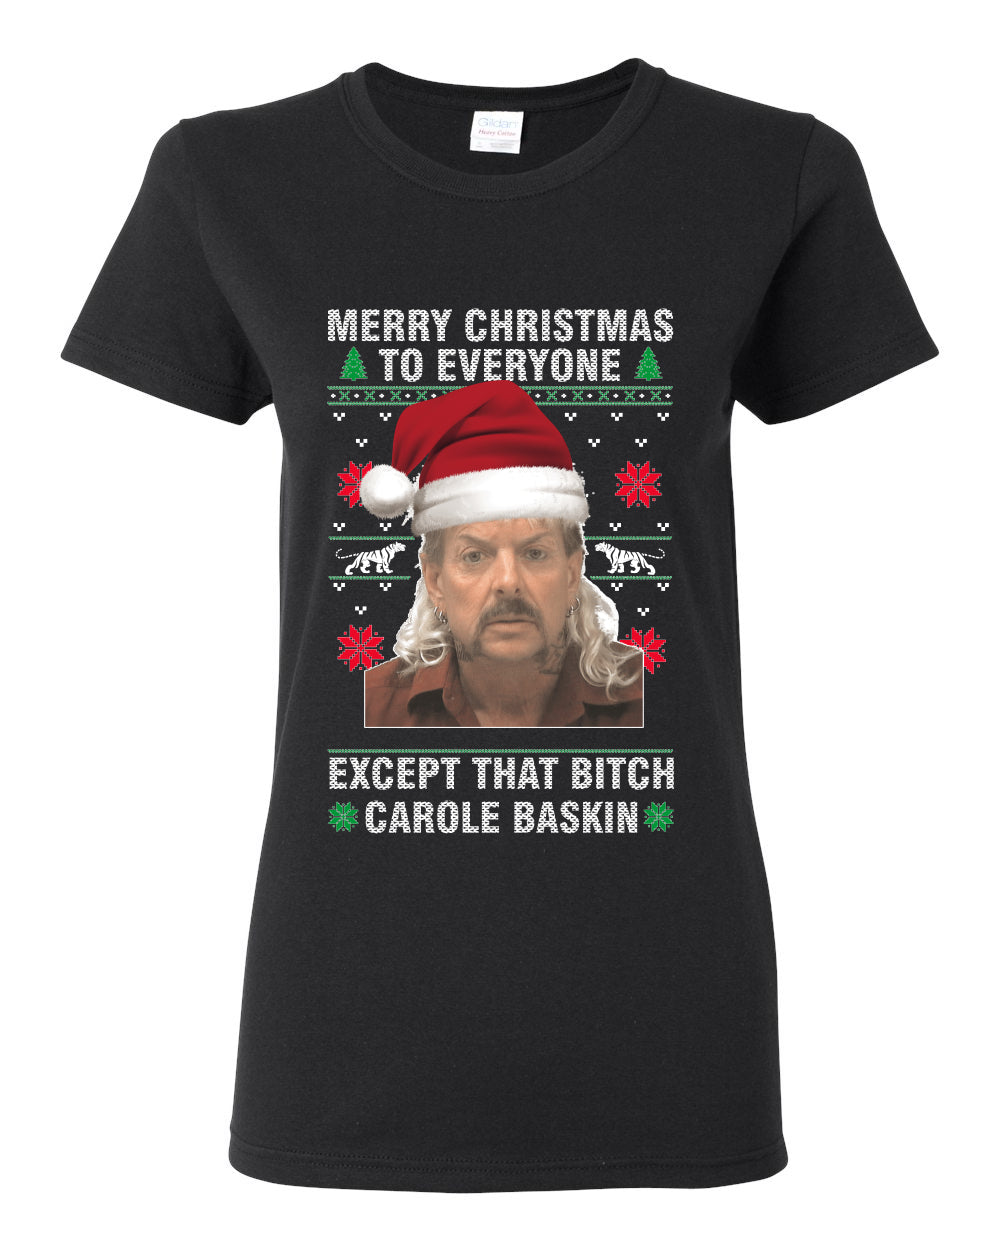 Merry Christmas to Everyone Except Carole Baskin Ugly Christmas Sweater Womens Graphic T-Shirt